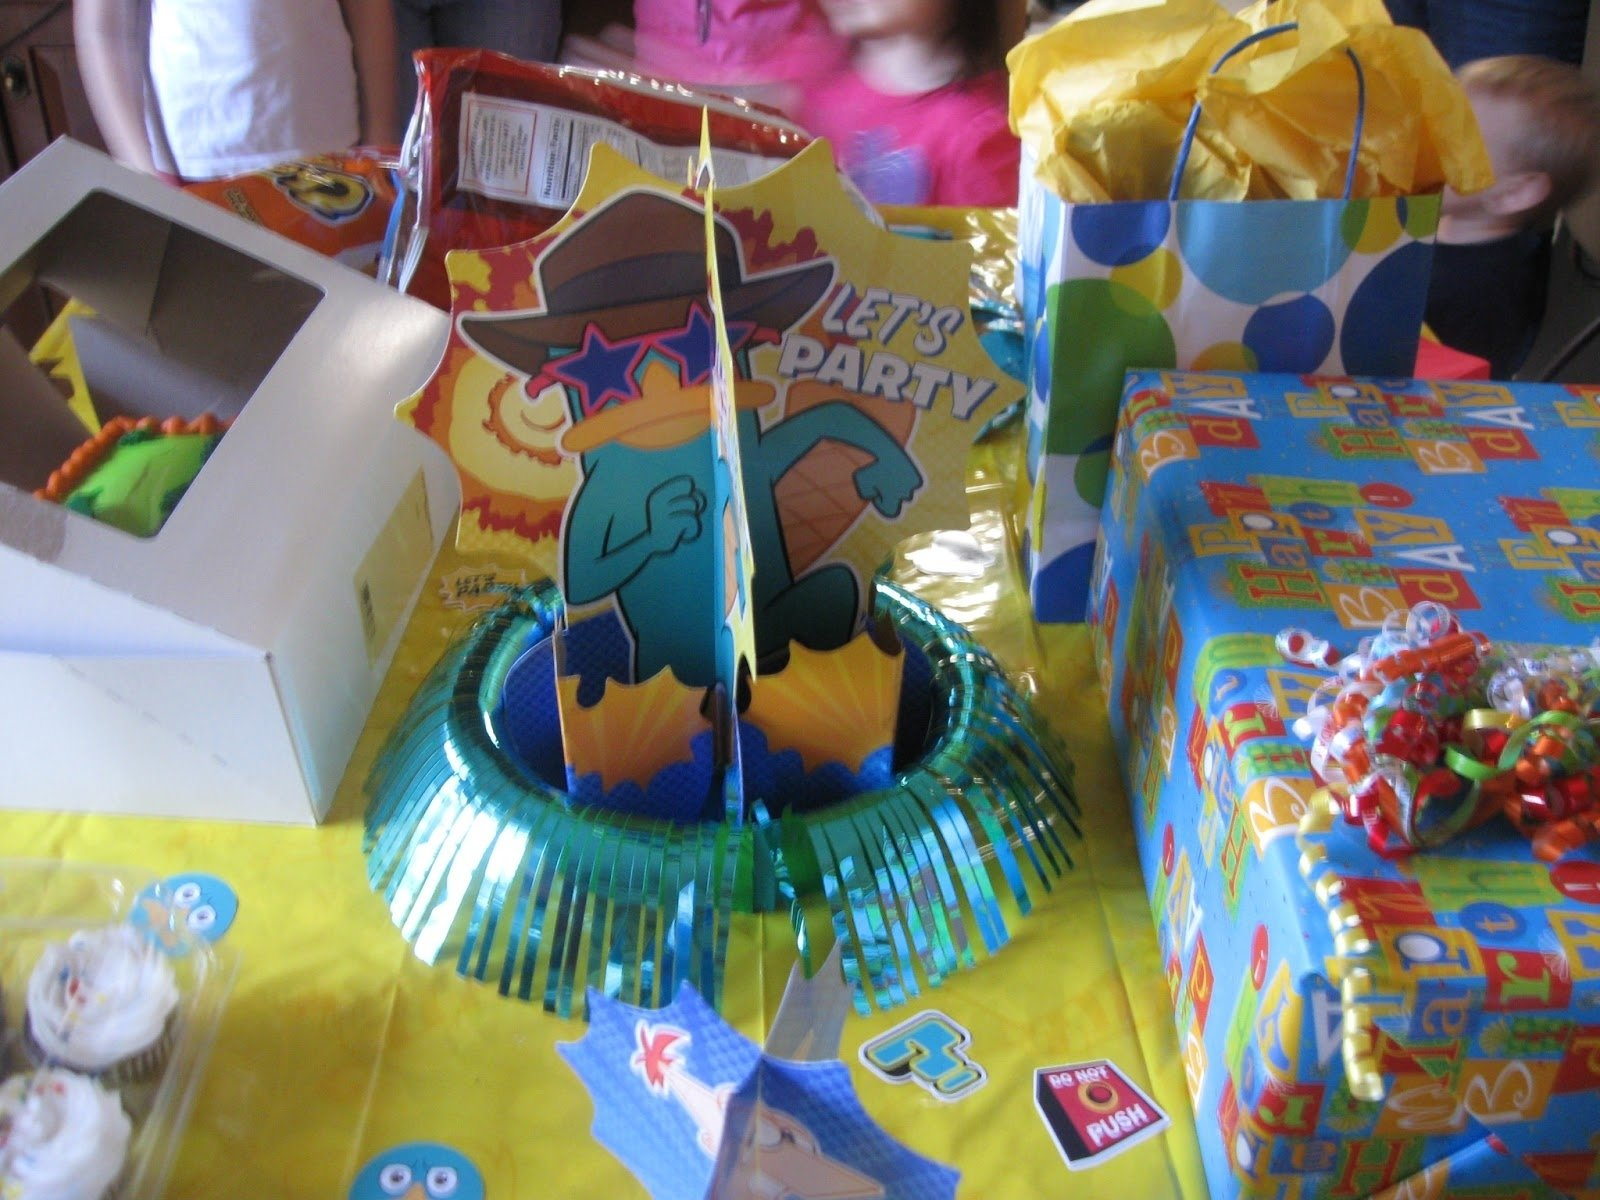 10 Most Popular Phineas And Ferb Party Ideas taste and see gods goodness phineas and ferb birthday party 2020